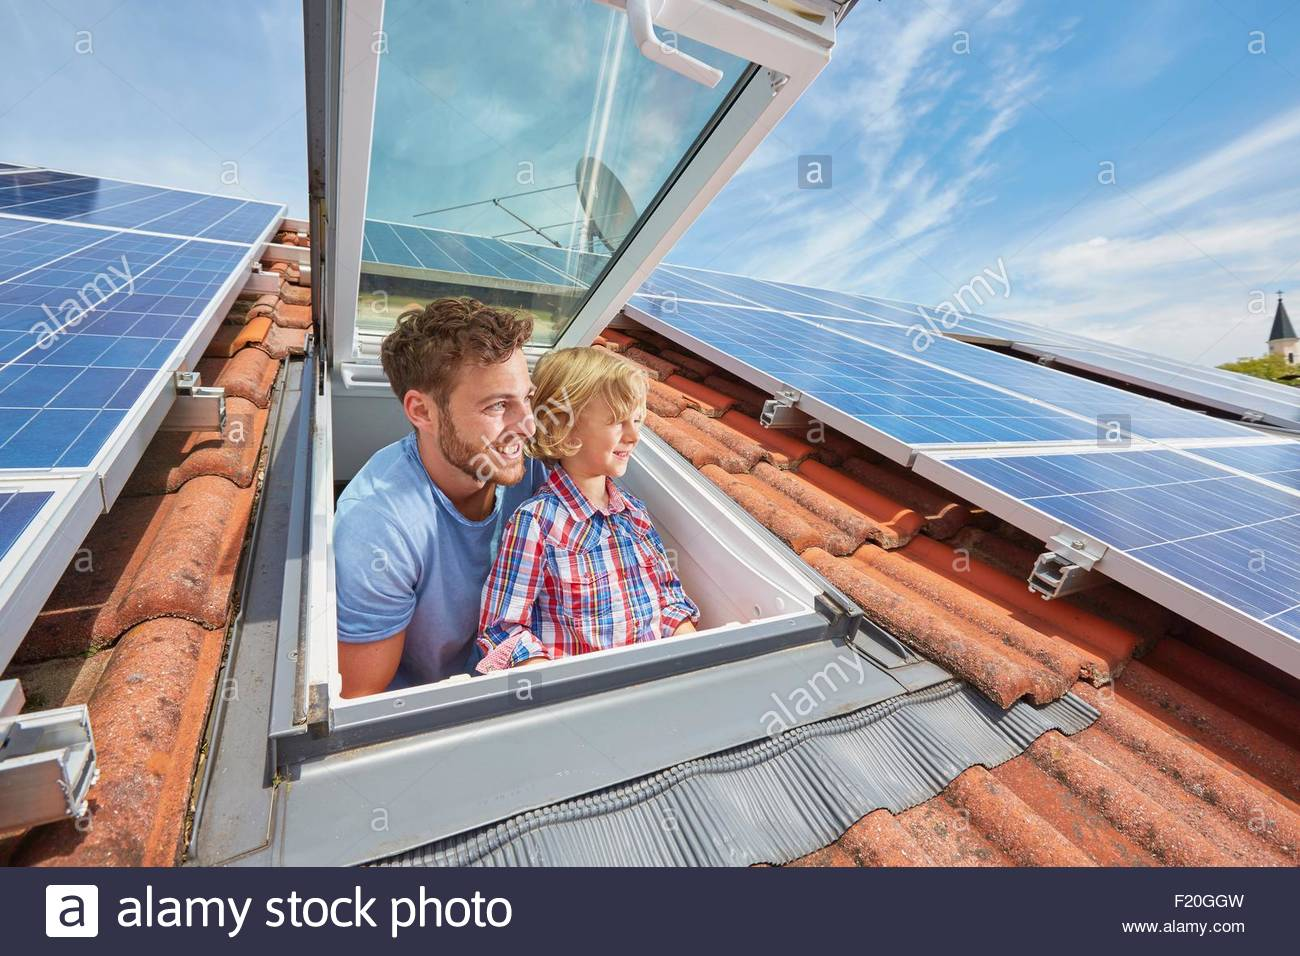 Father and son looking out of window of solar panelled roof - Stock Image